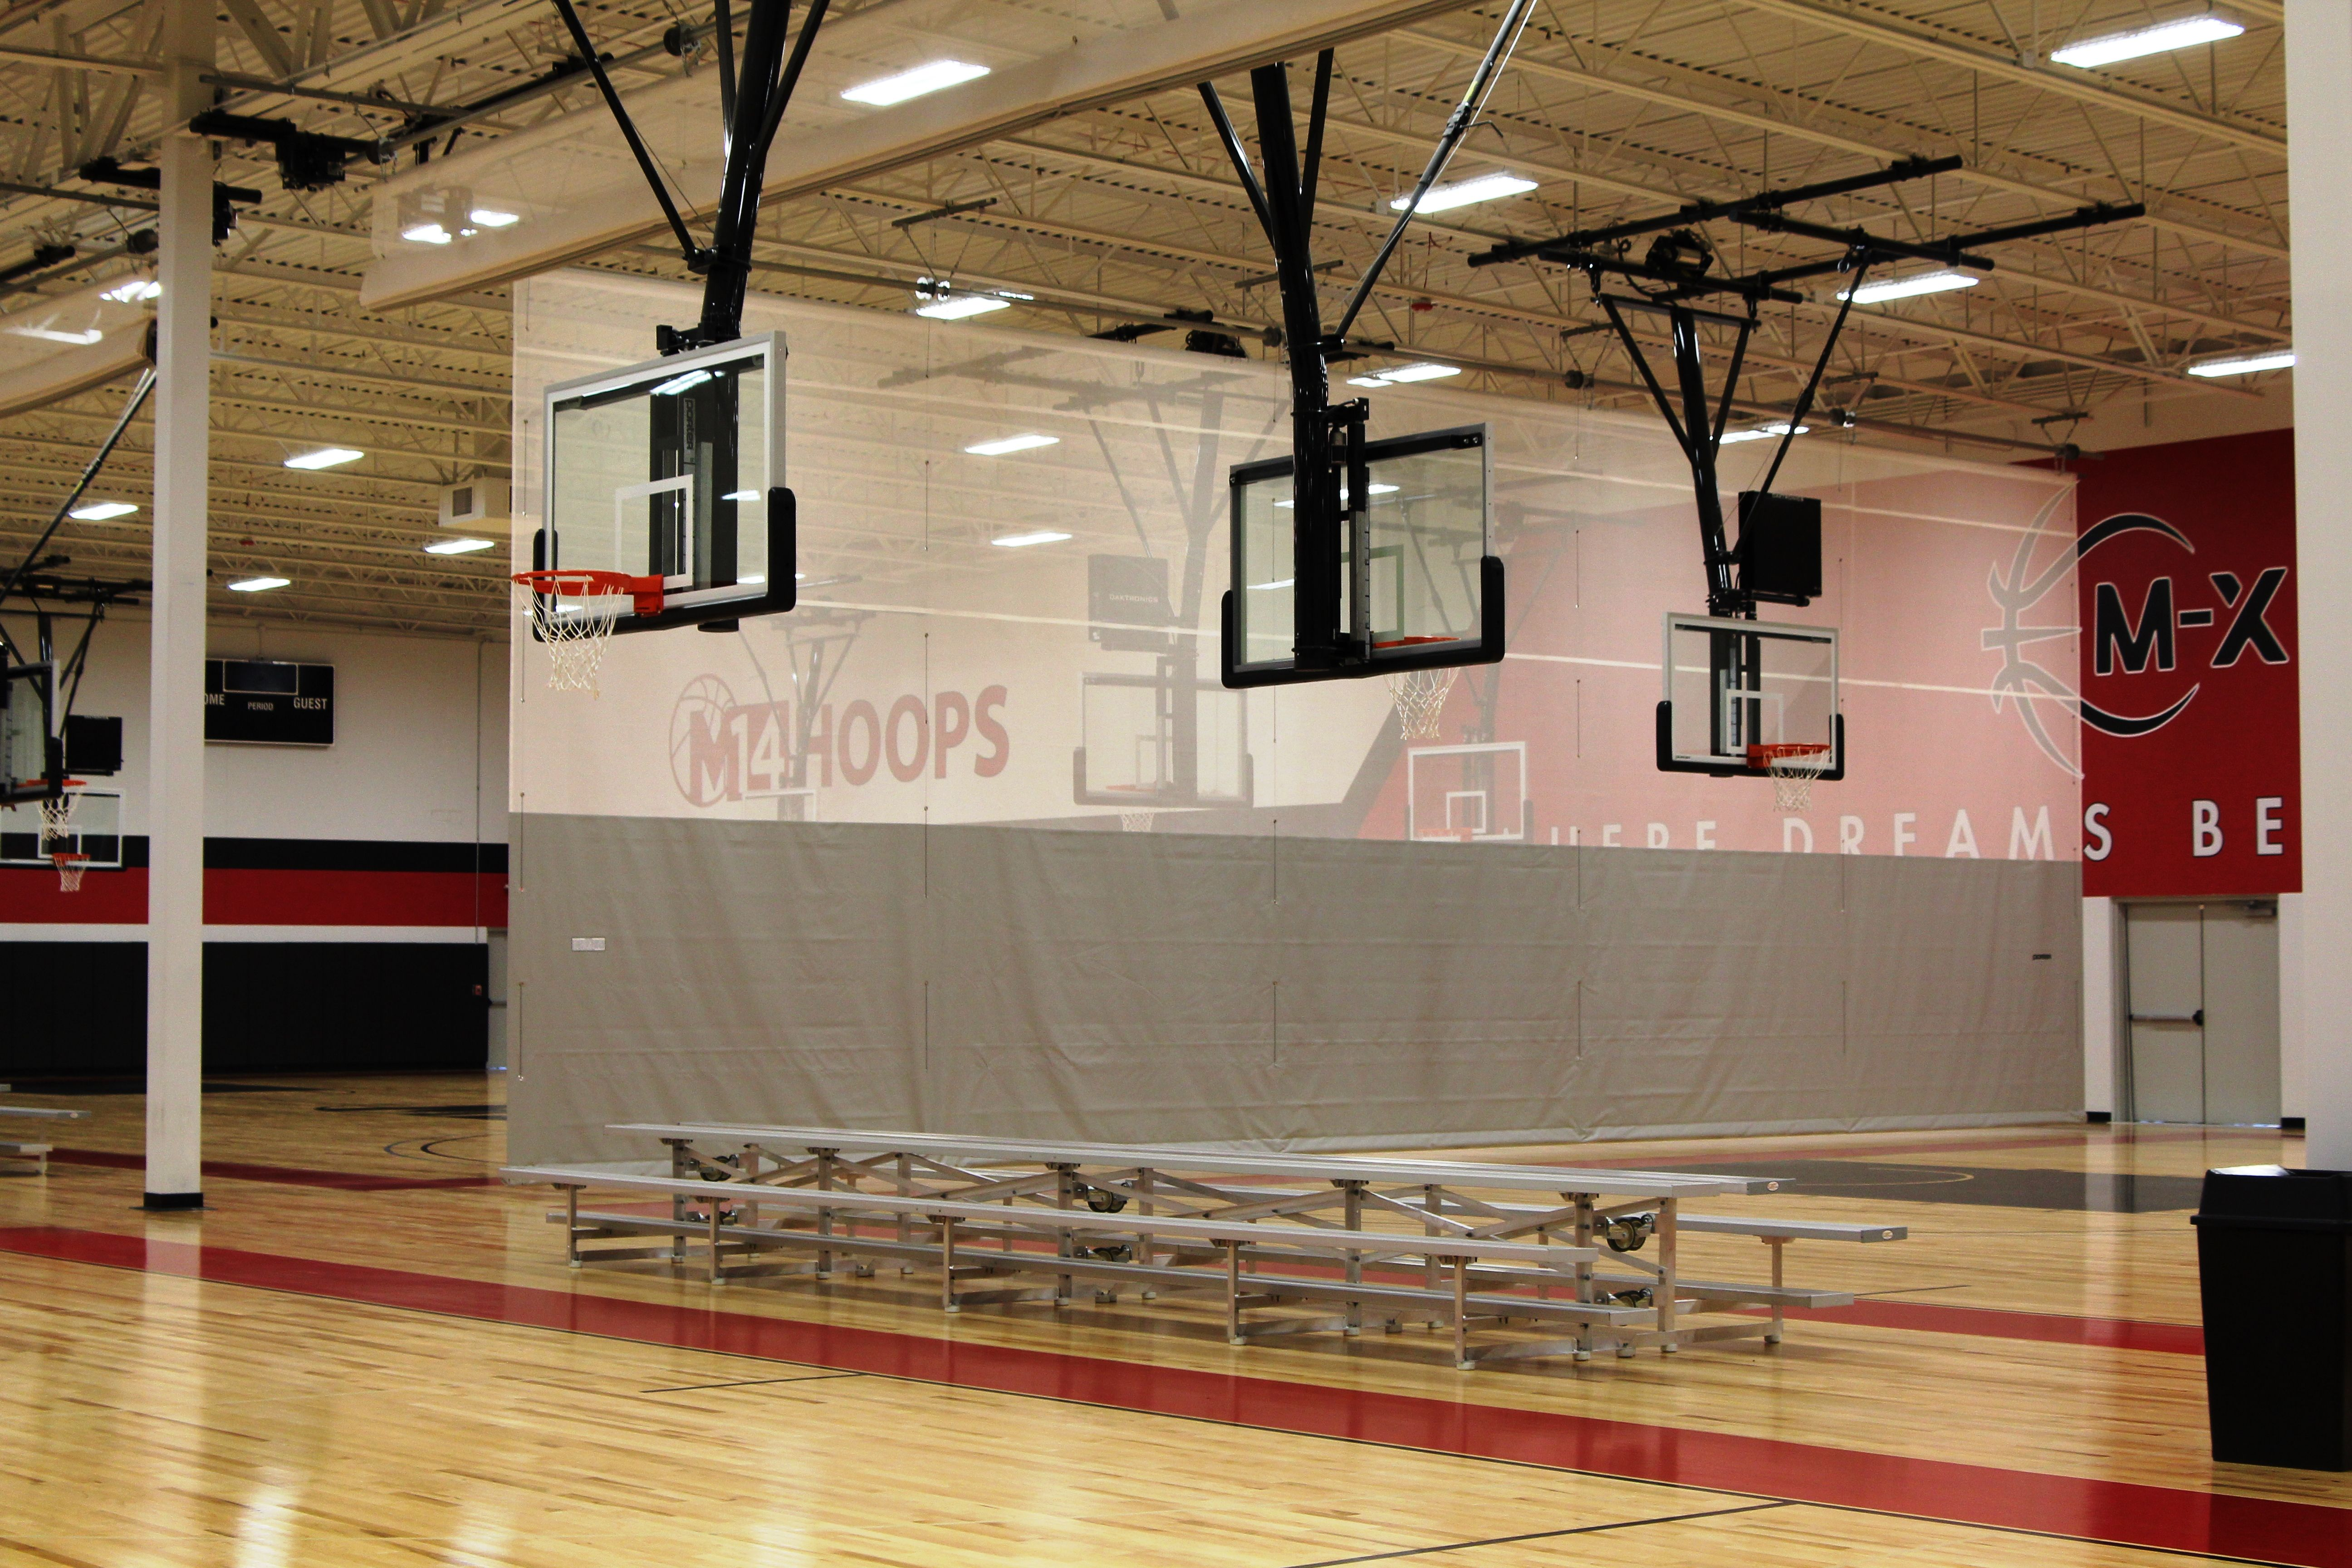 Gym Divider Curtain Safety And Maintenance Divider Curtains Gym